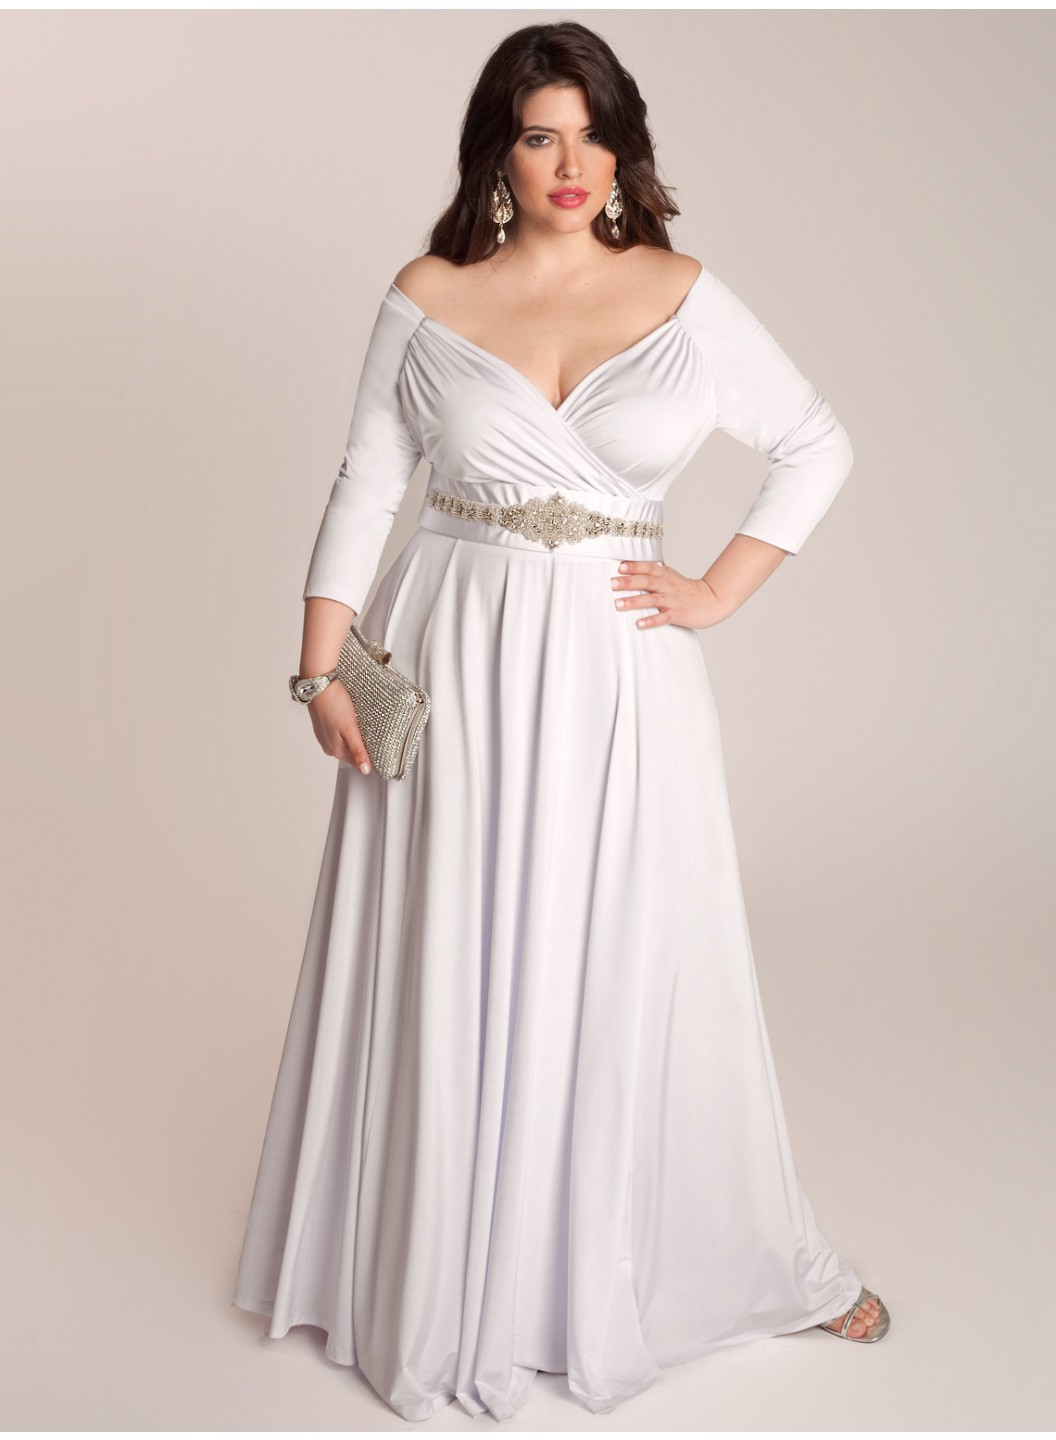 Plus size women christmas party dresses collection for for Dresses to wear to a christmas wedding